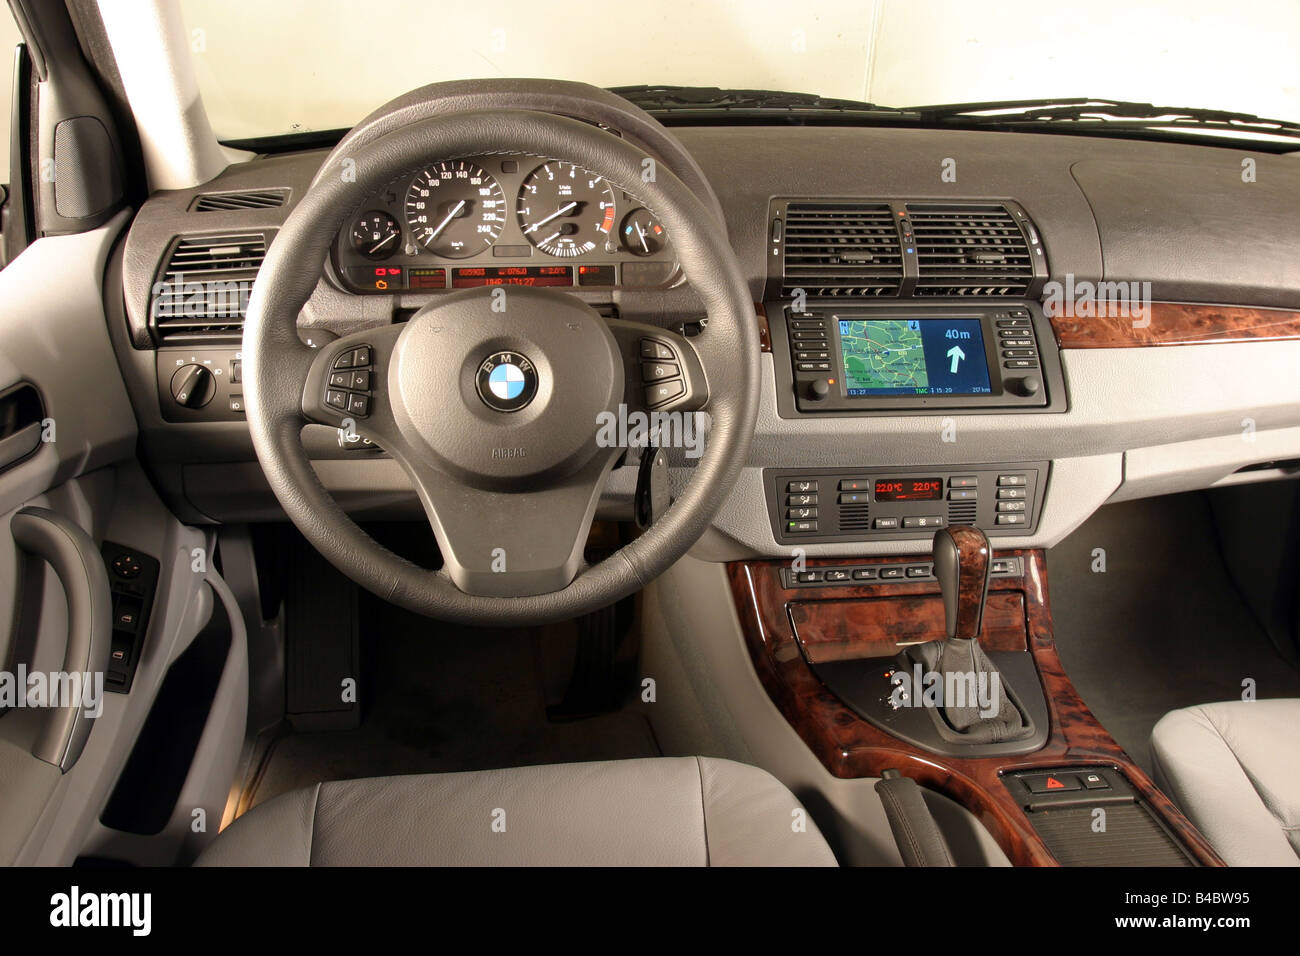 Car bmw x5 cross country vehicle model year 2003 for Bmw x5 interior